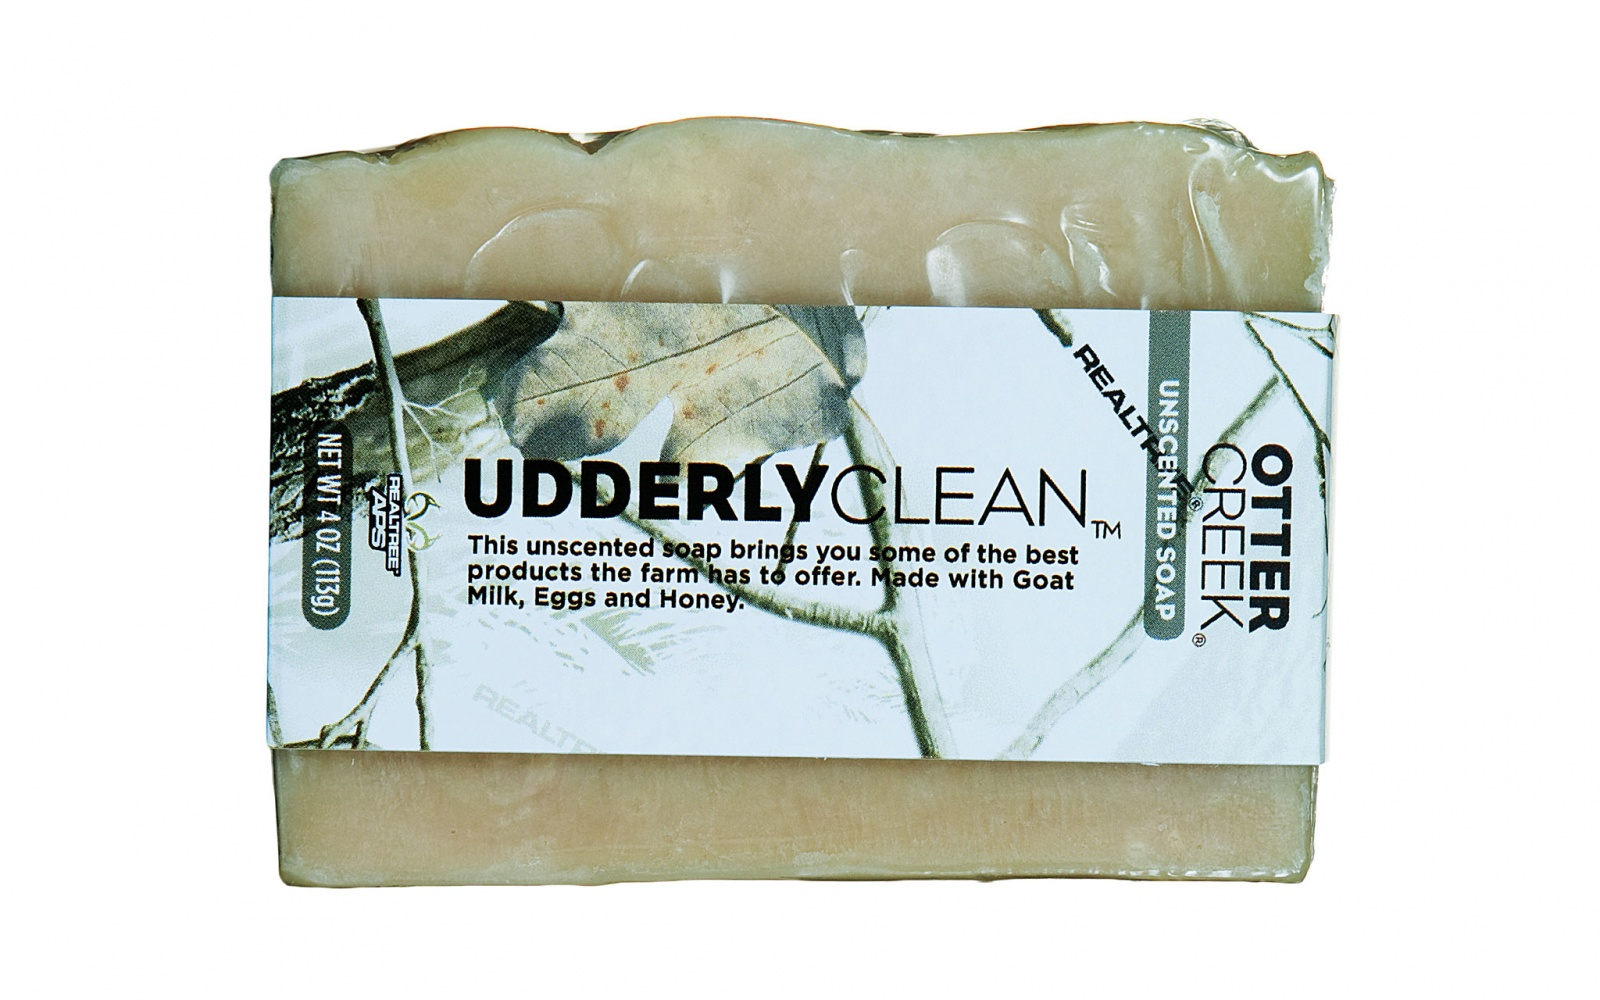 Udderly Clean Bar Soap